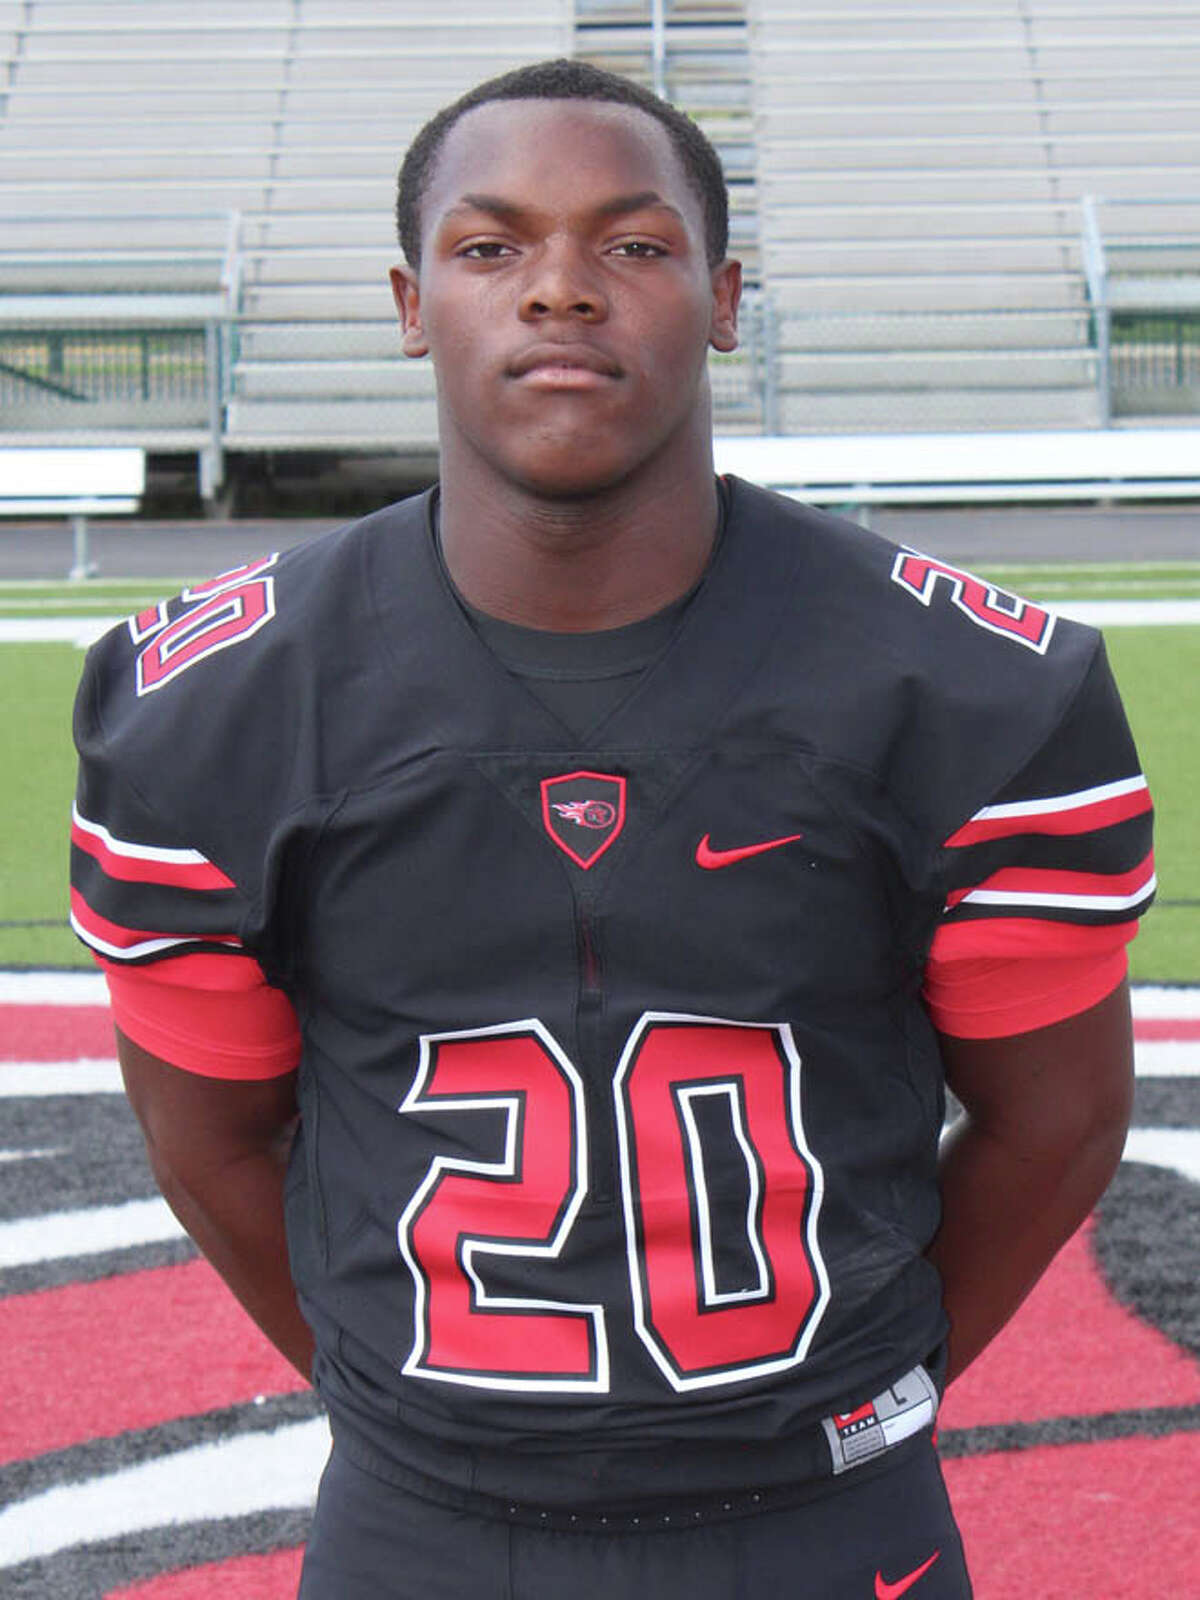 Marcus Younger, Port Arthur Memorial Position: RB Height: 5-5 Weight: 180 pounds Grade: Senior Memorial's backup running back looks to have a breakout year as the second option in the Titans backfield.